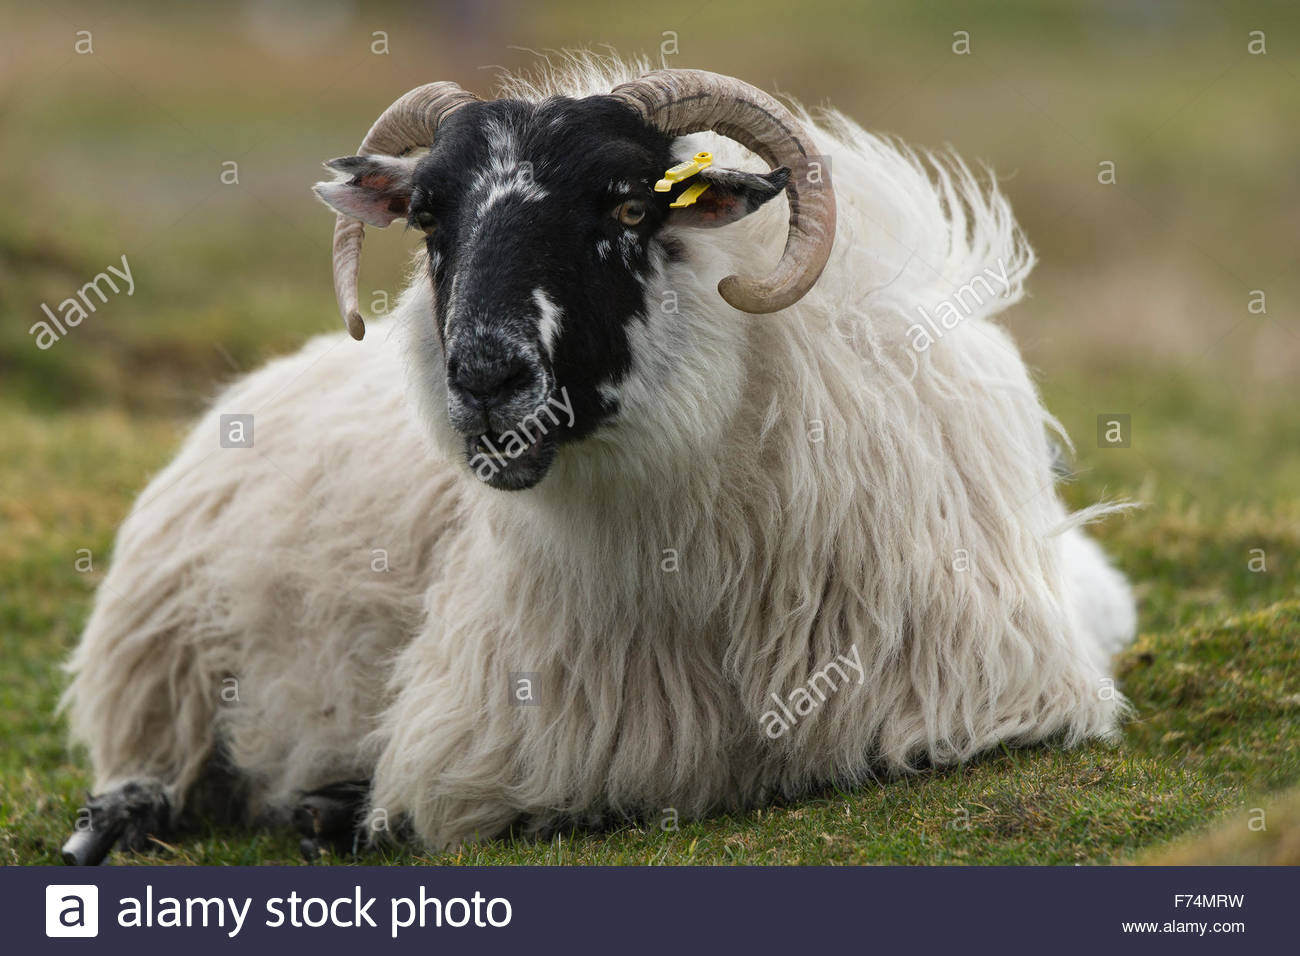 A Sheep on the Isle of Harris, Outer Hebrides, Scotland - Stock Image